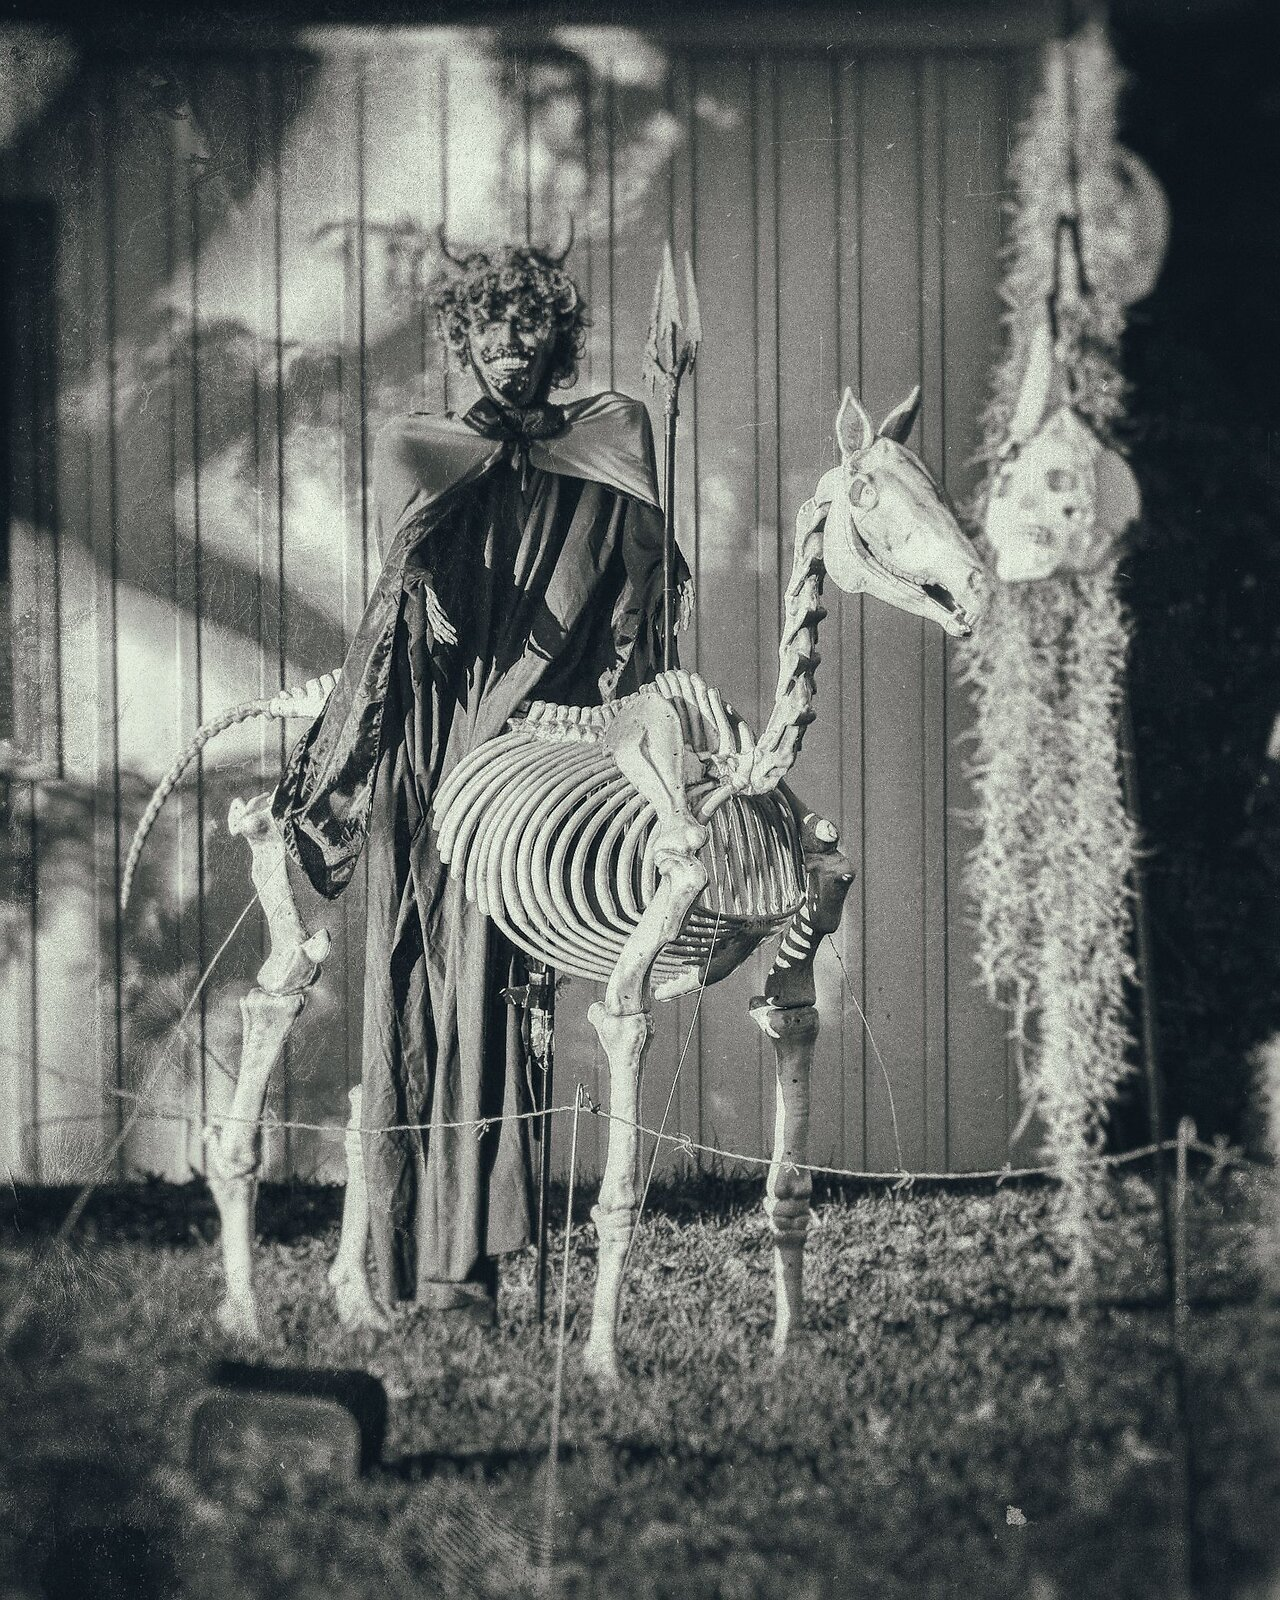 10-13-2020_noebixby_halloween_XT030609_analogefex_wetplate3.JPG